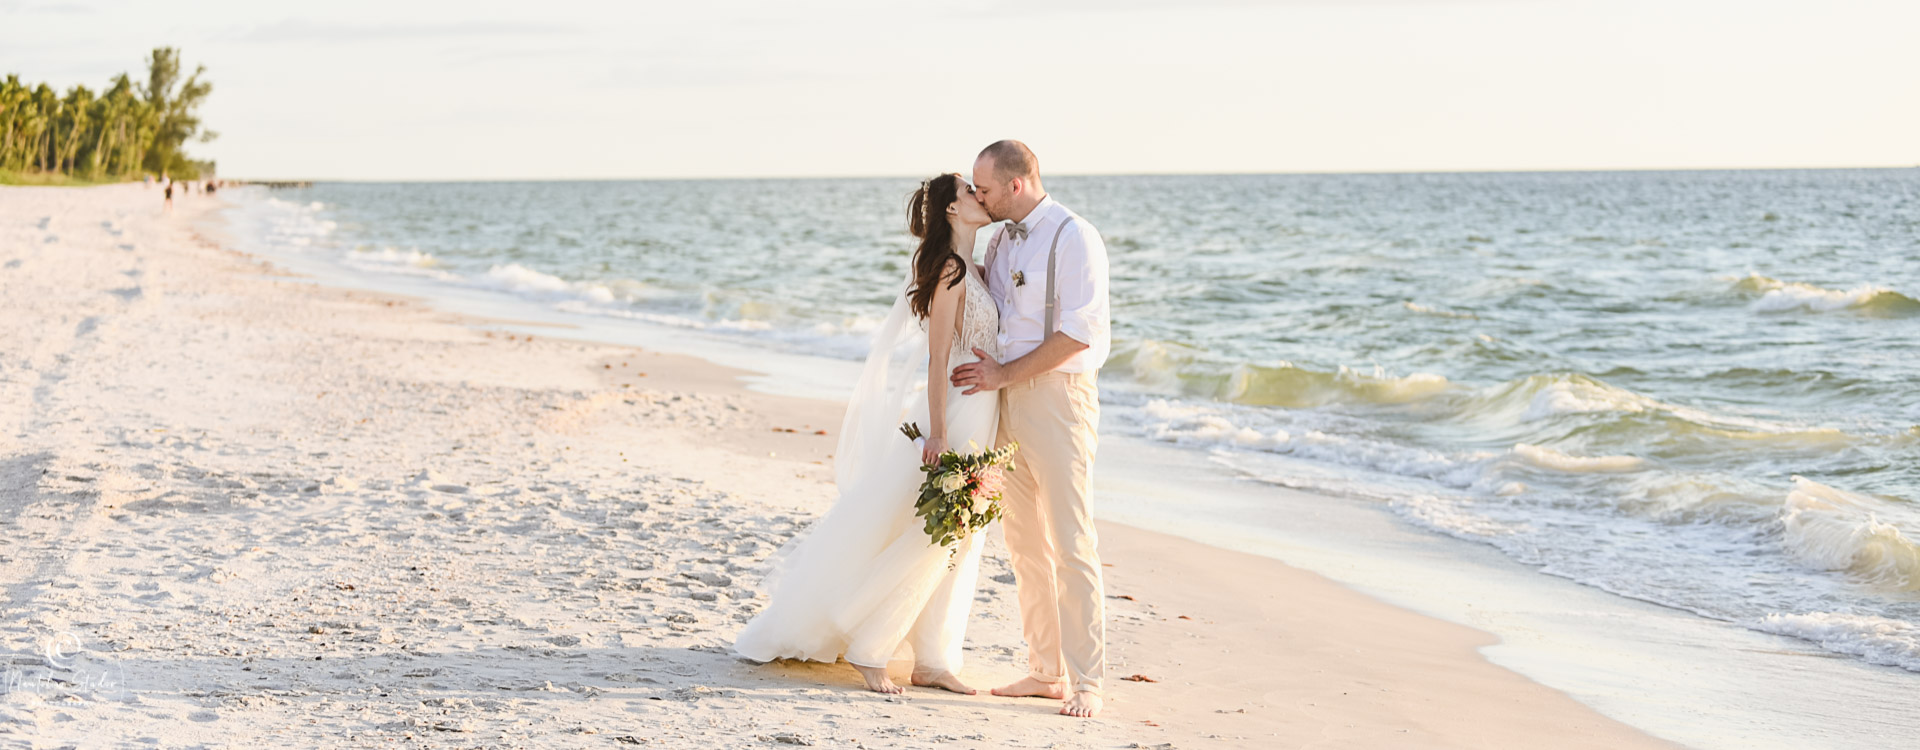 Ceremony & More Archives   Dream Weddings and Florida Lifestyle ...